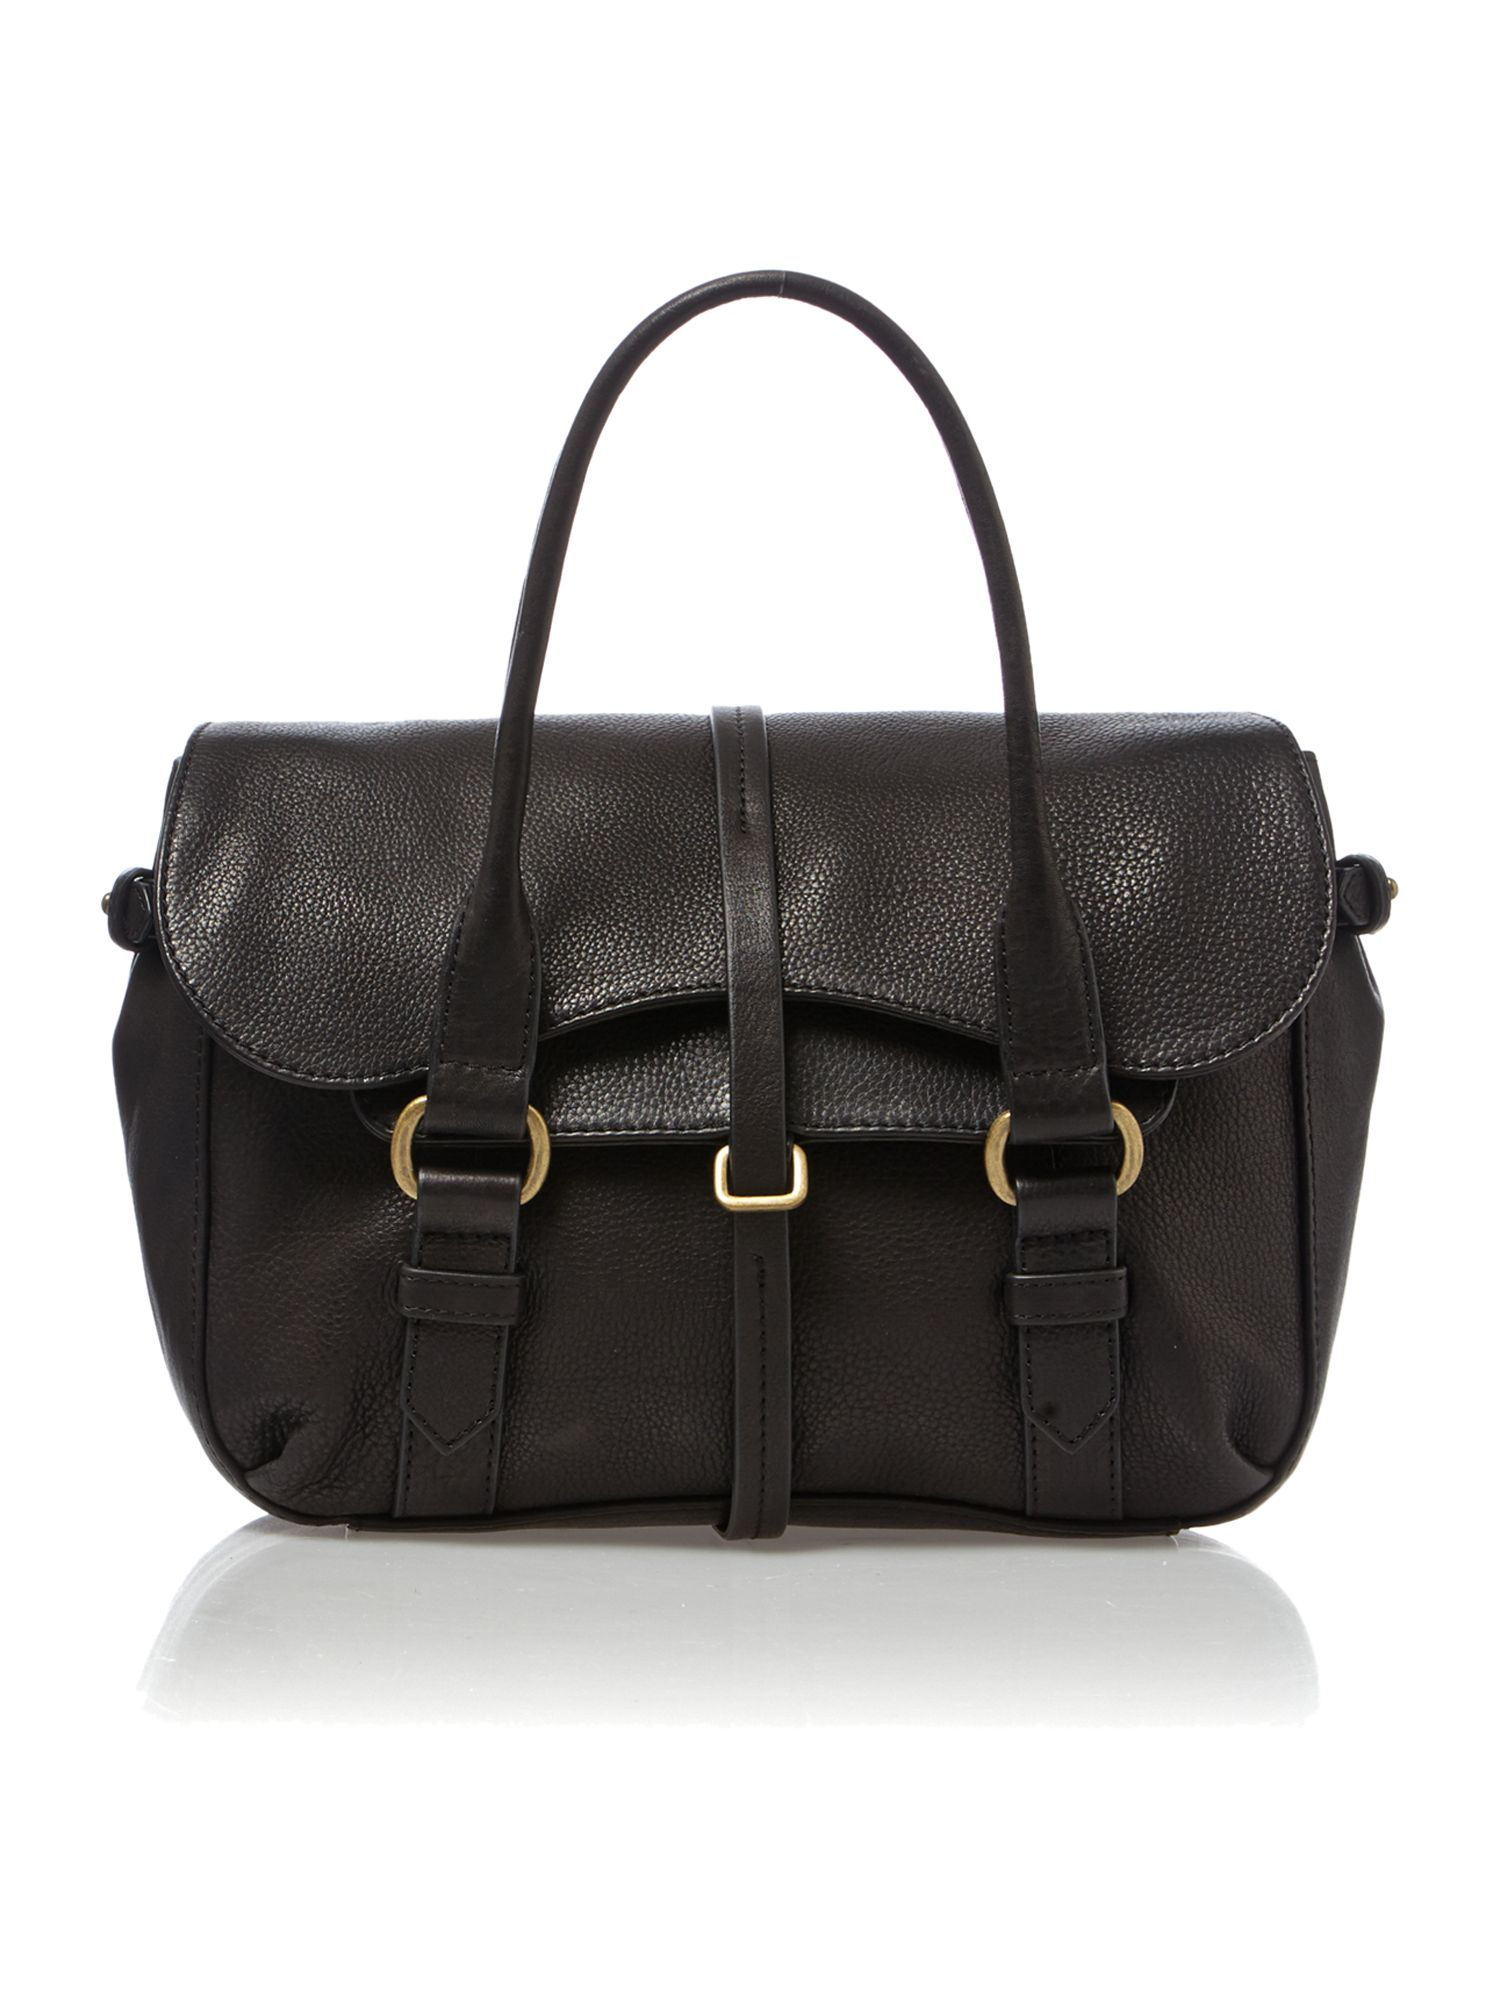 Grosvenor black medium crossbody bag